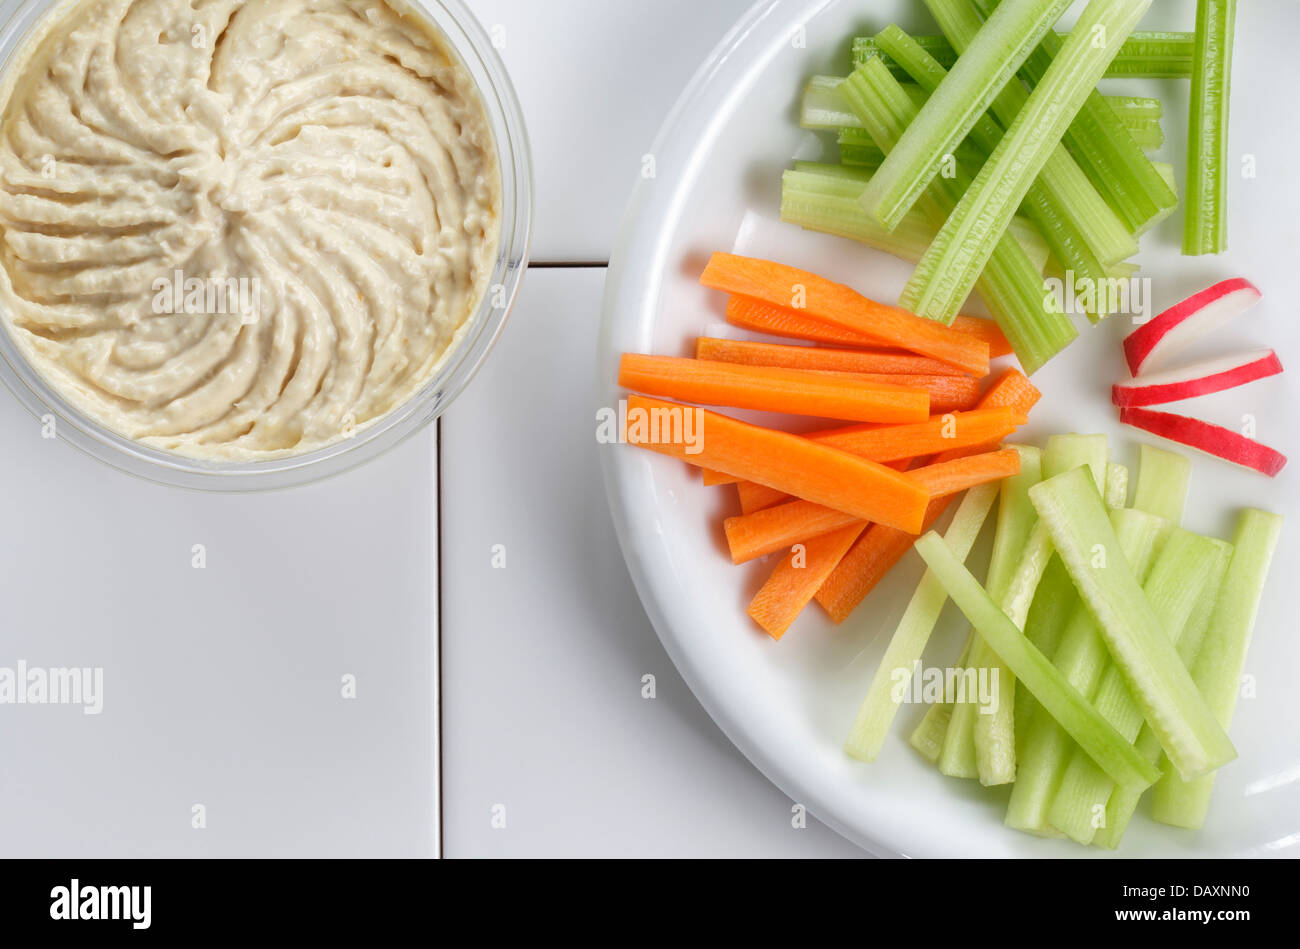 Houmous or Hummus with fresh vegetables - Stock Image